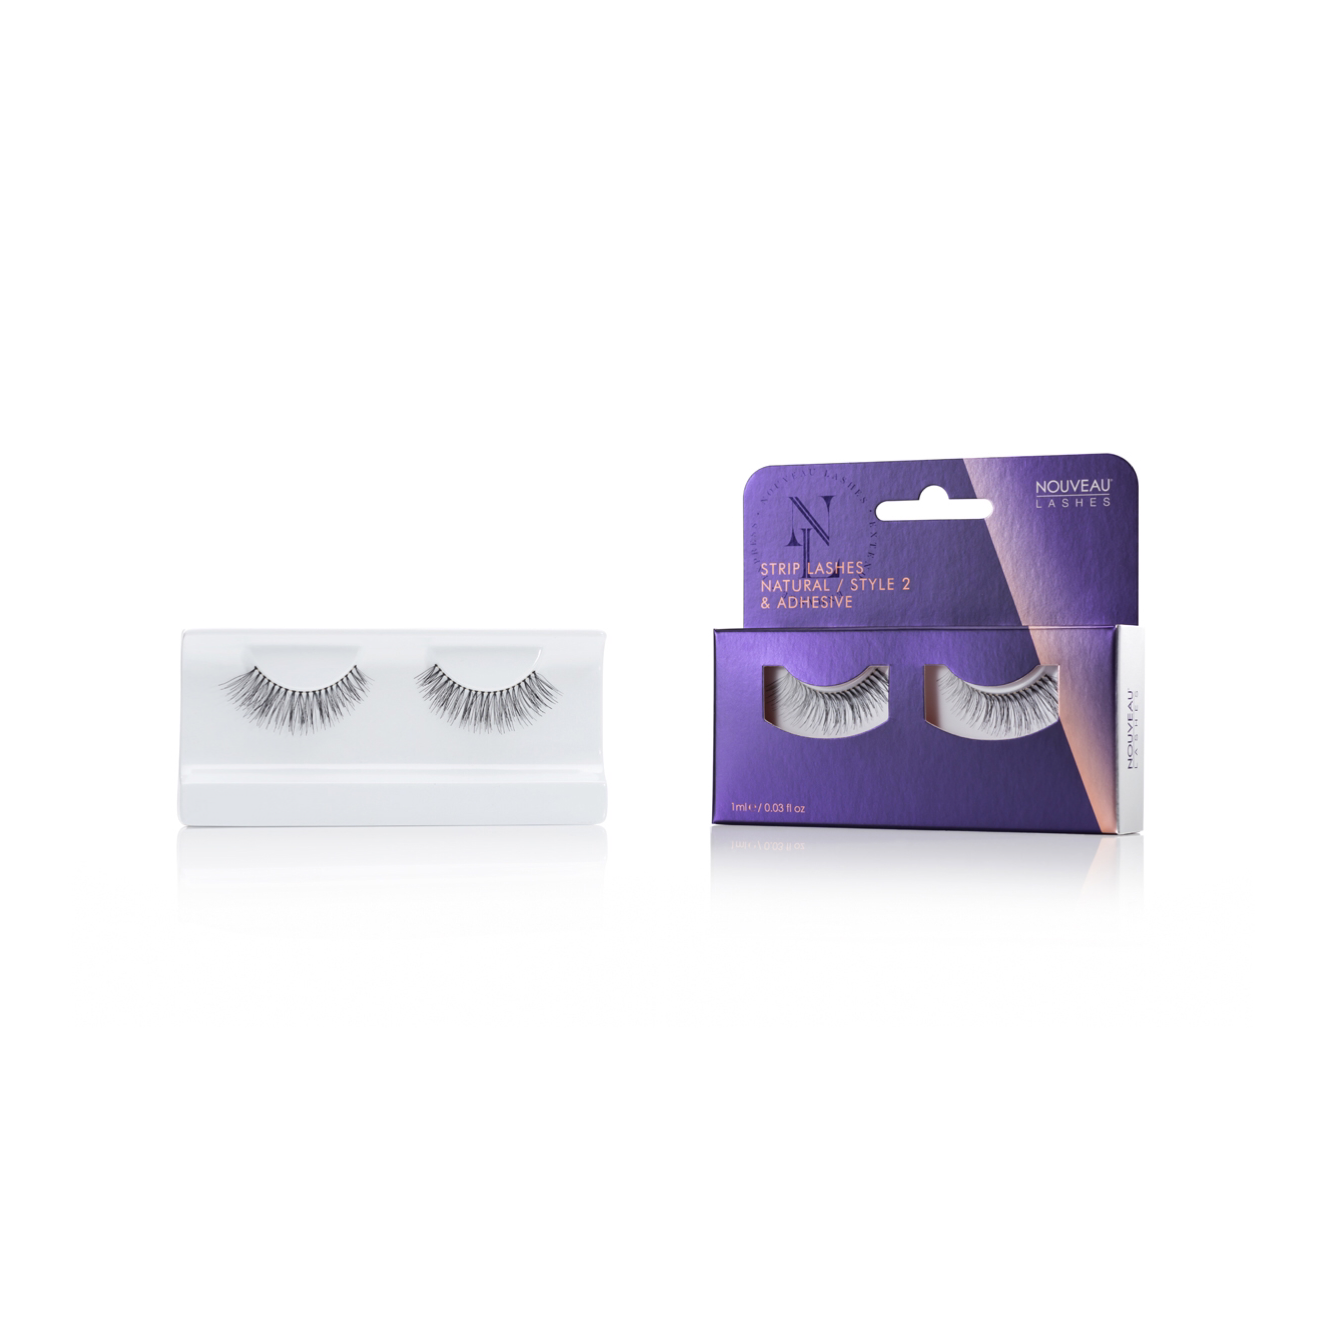 Nouveau Strip Lashes Natural Style 2